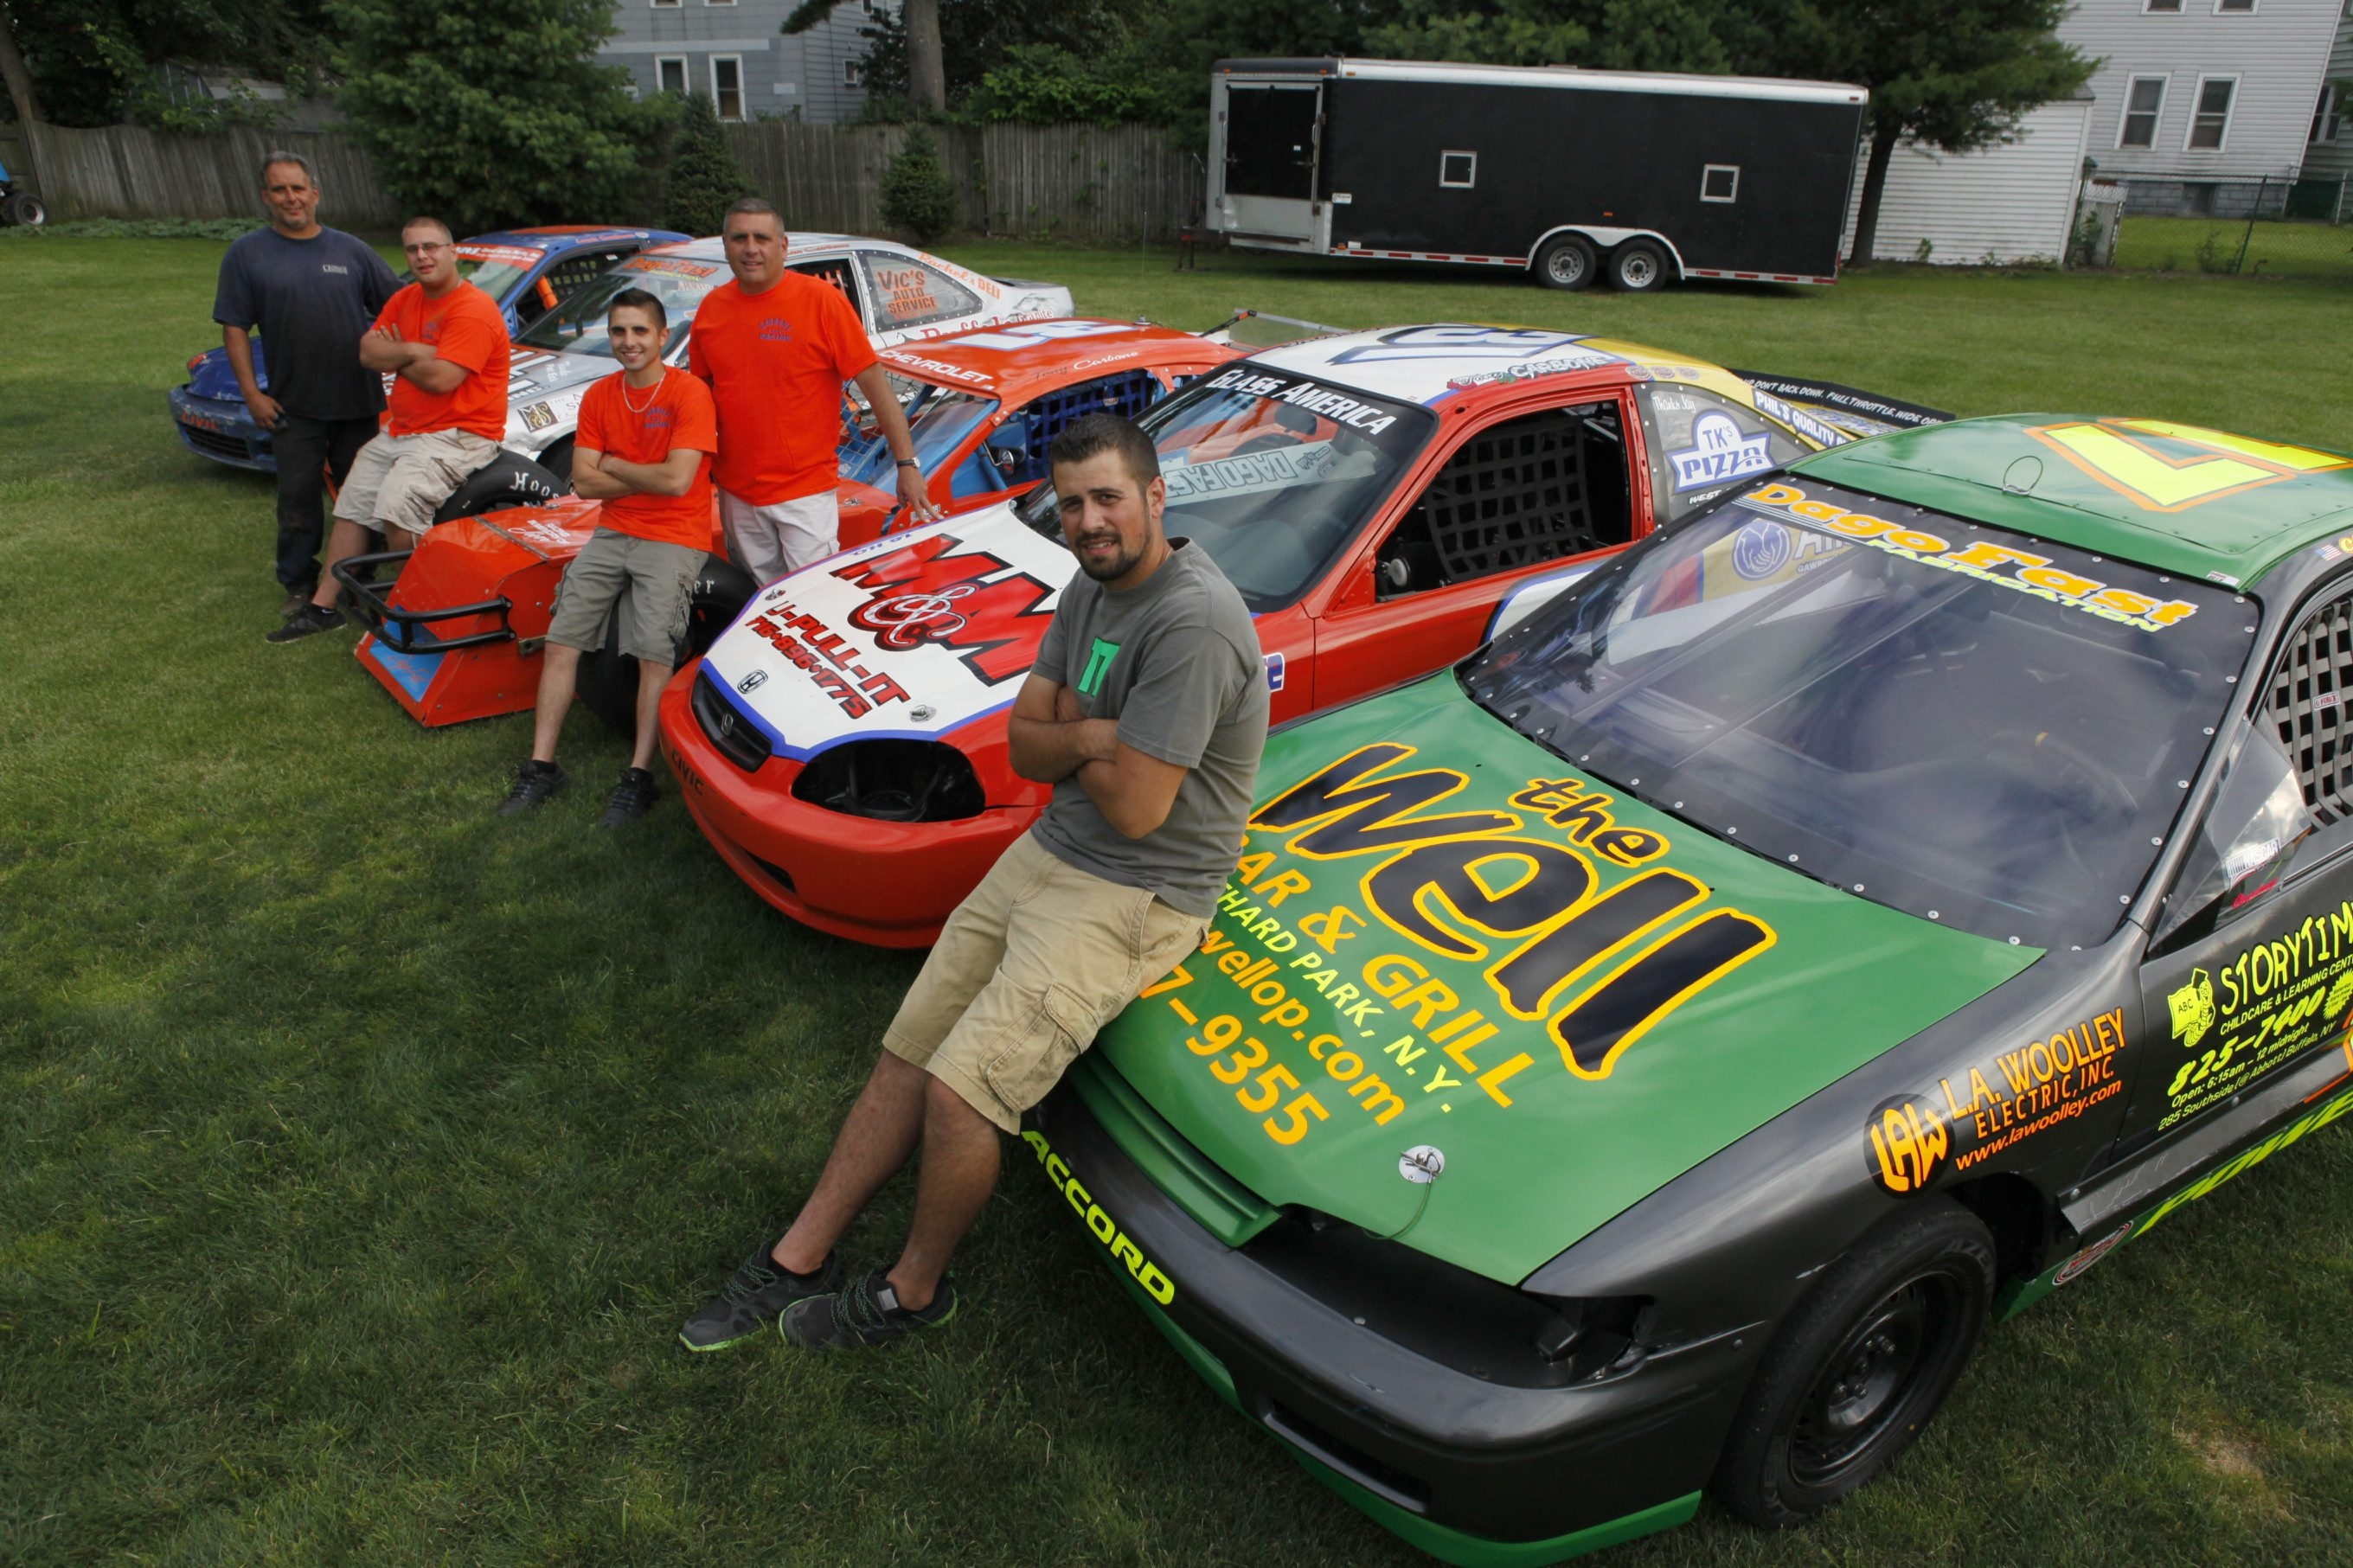 Members of the Carbone racing family include, left to right:  Louis Sr. and son Louis, Joe, and son Tony, and Chris Powers.